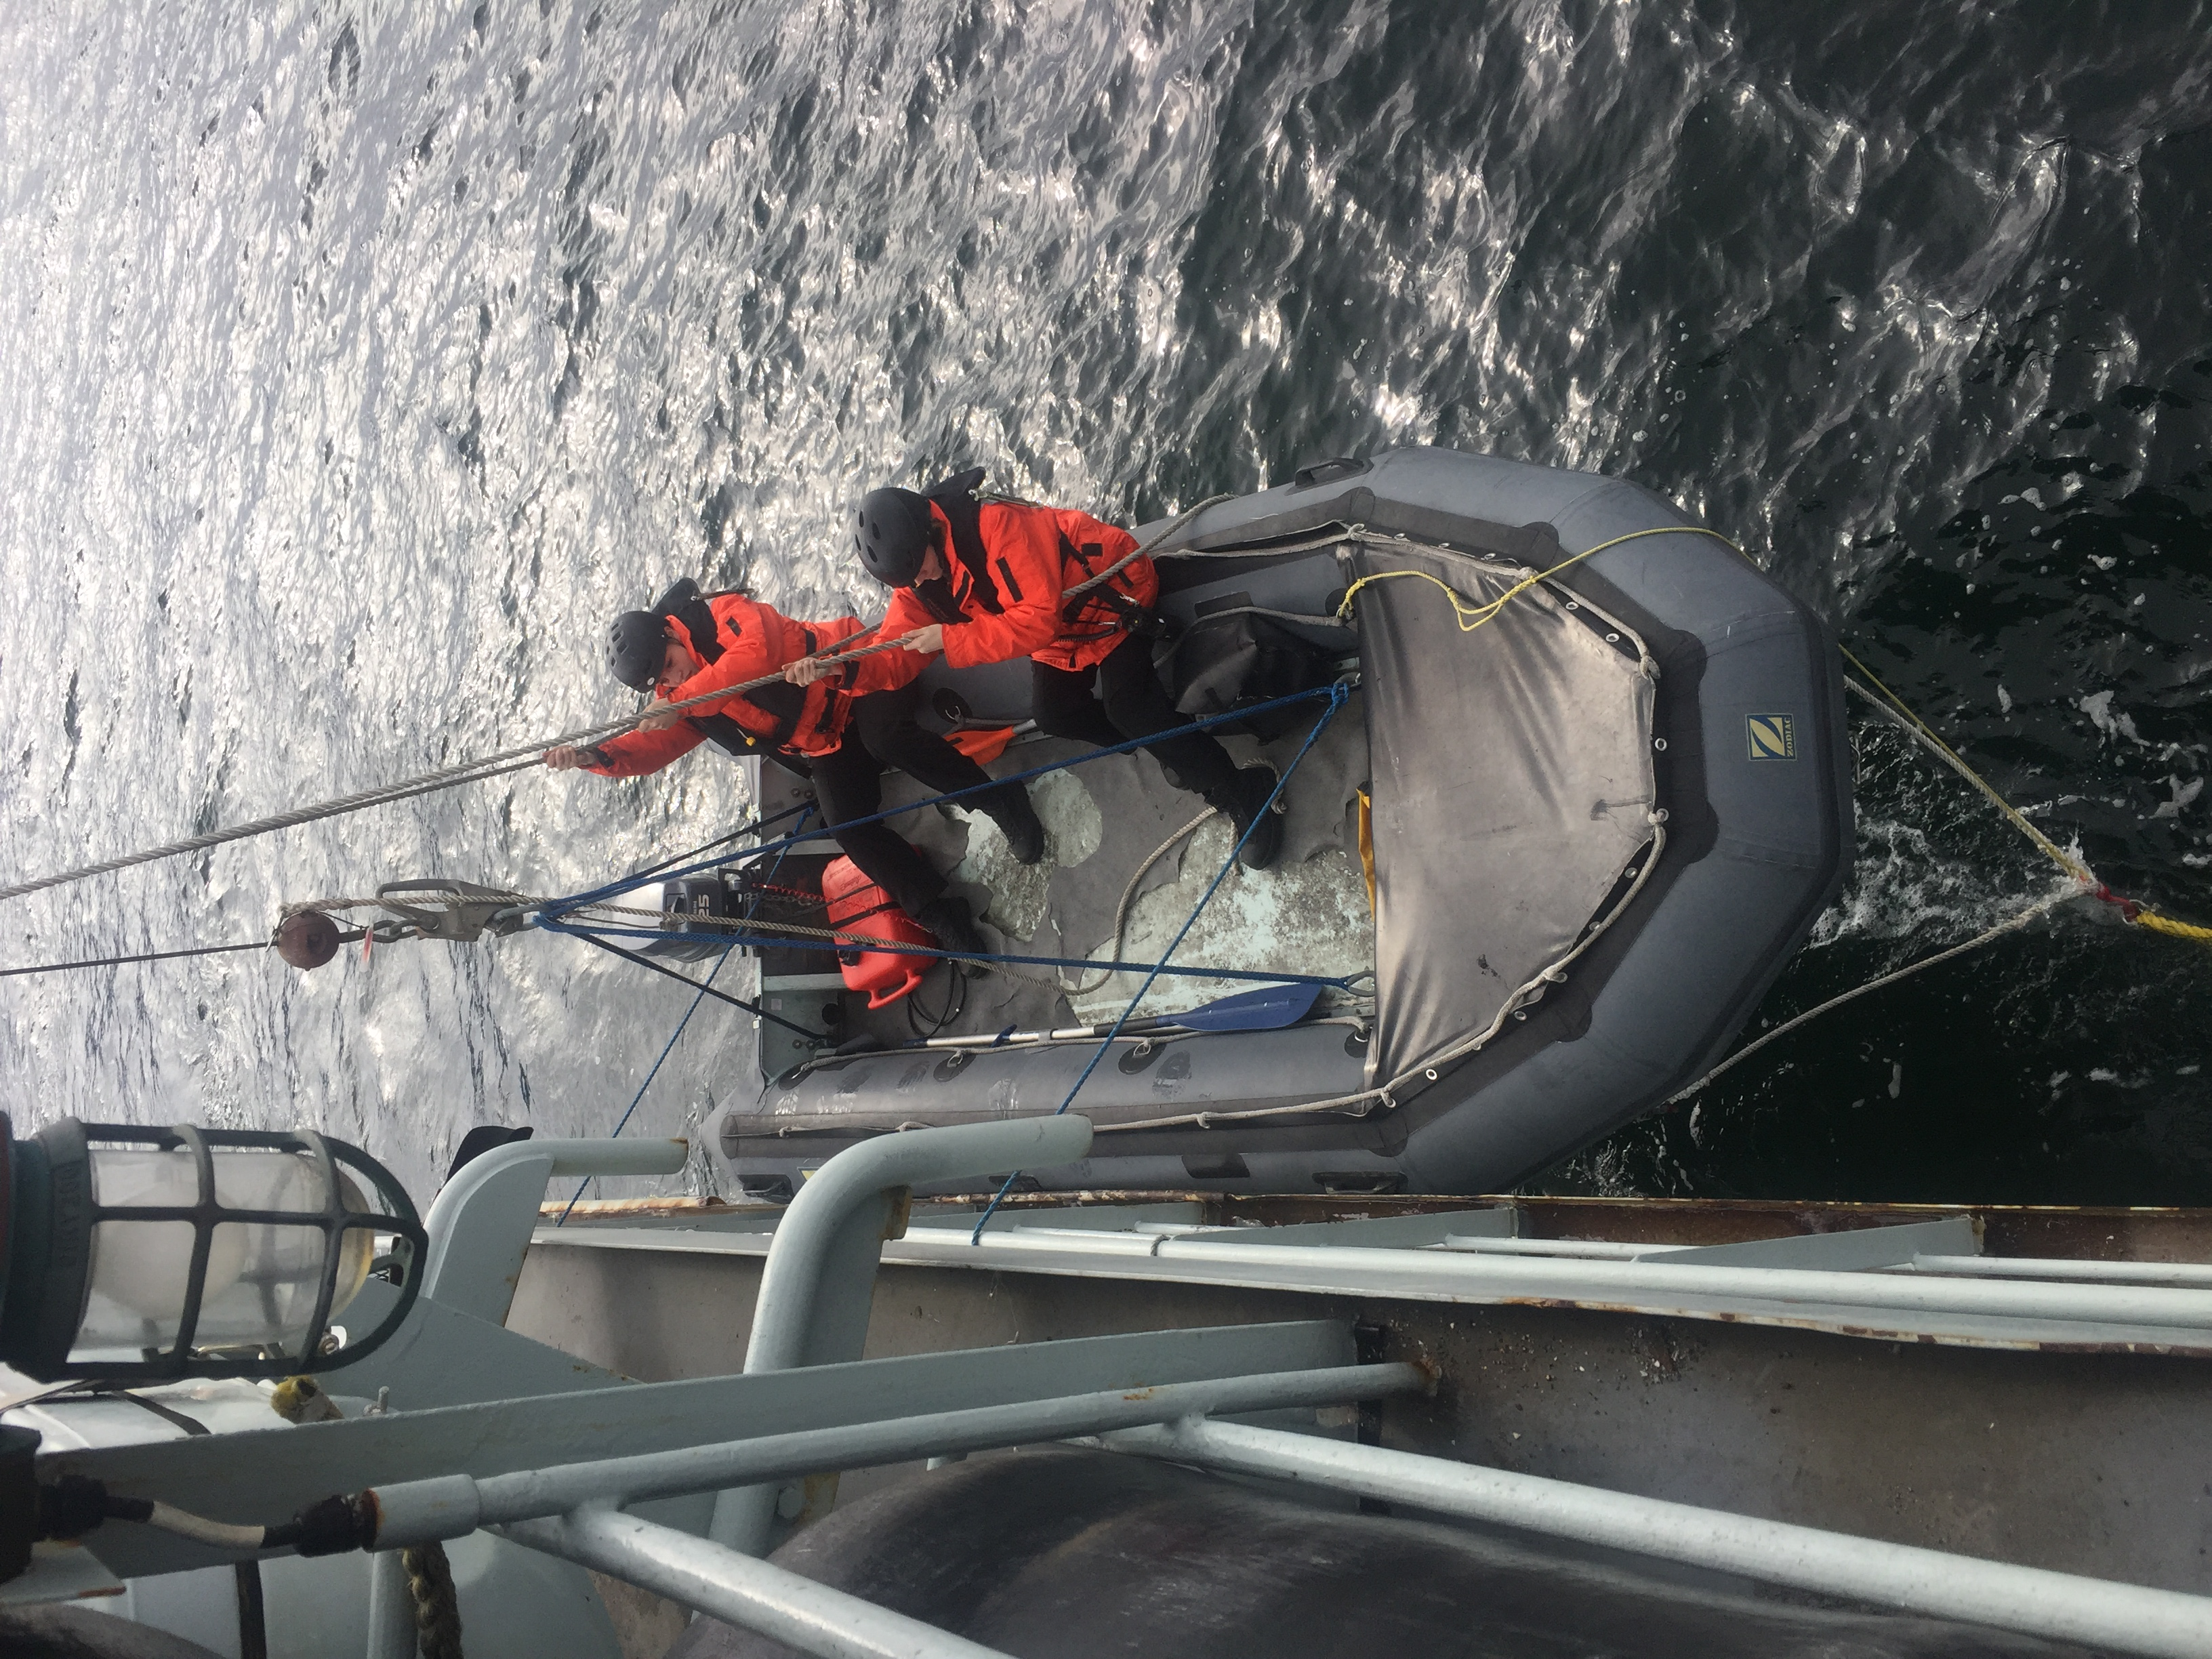 Able Seaman Cassandra Littlepine and Ordinary Seaman Roxanne Cassista participate in a man overboard drill during a training sail through the Gulf Islands of British Columbia.